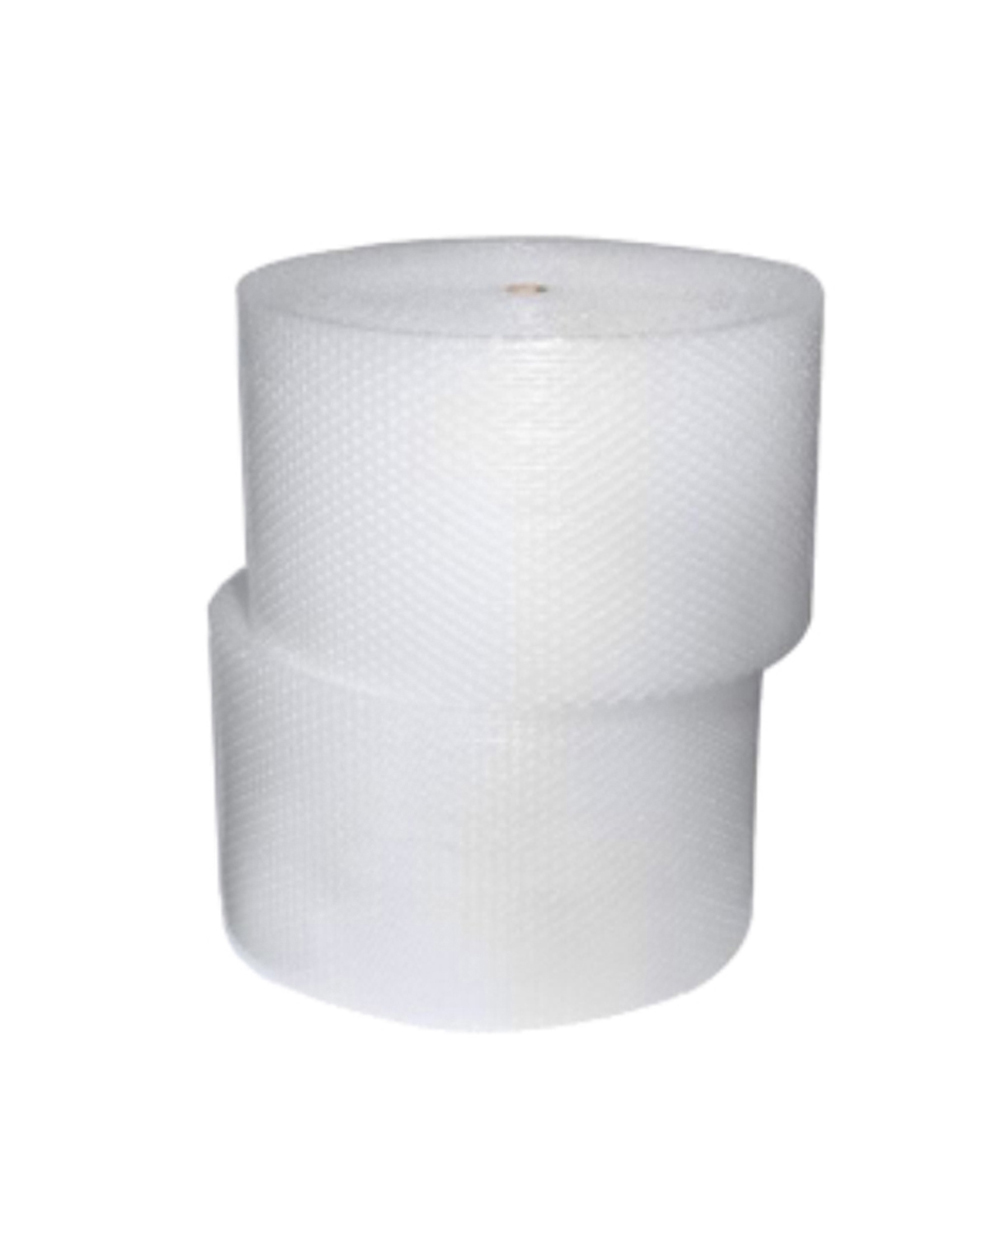 Bubble Rolls - Non-Perforated